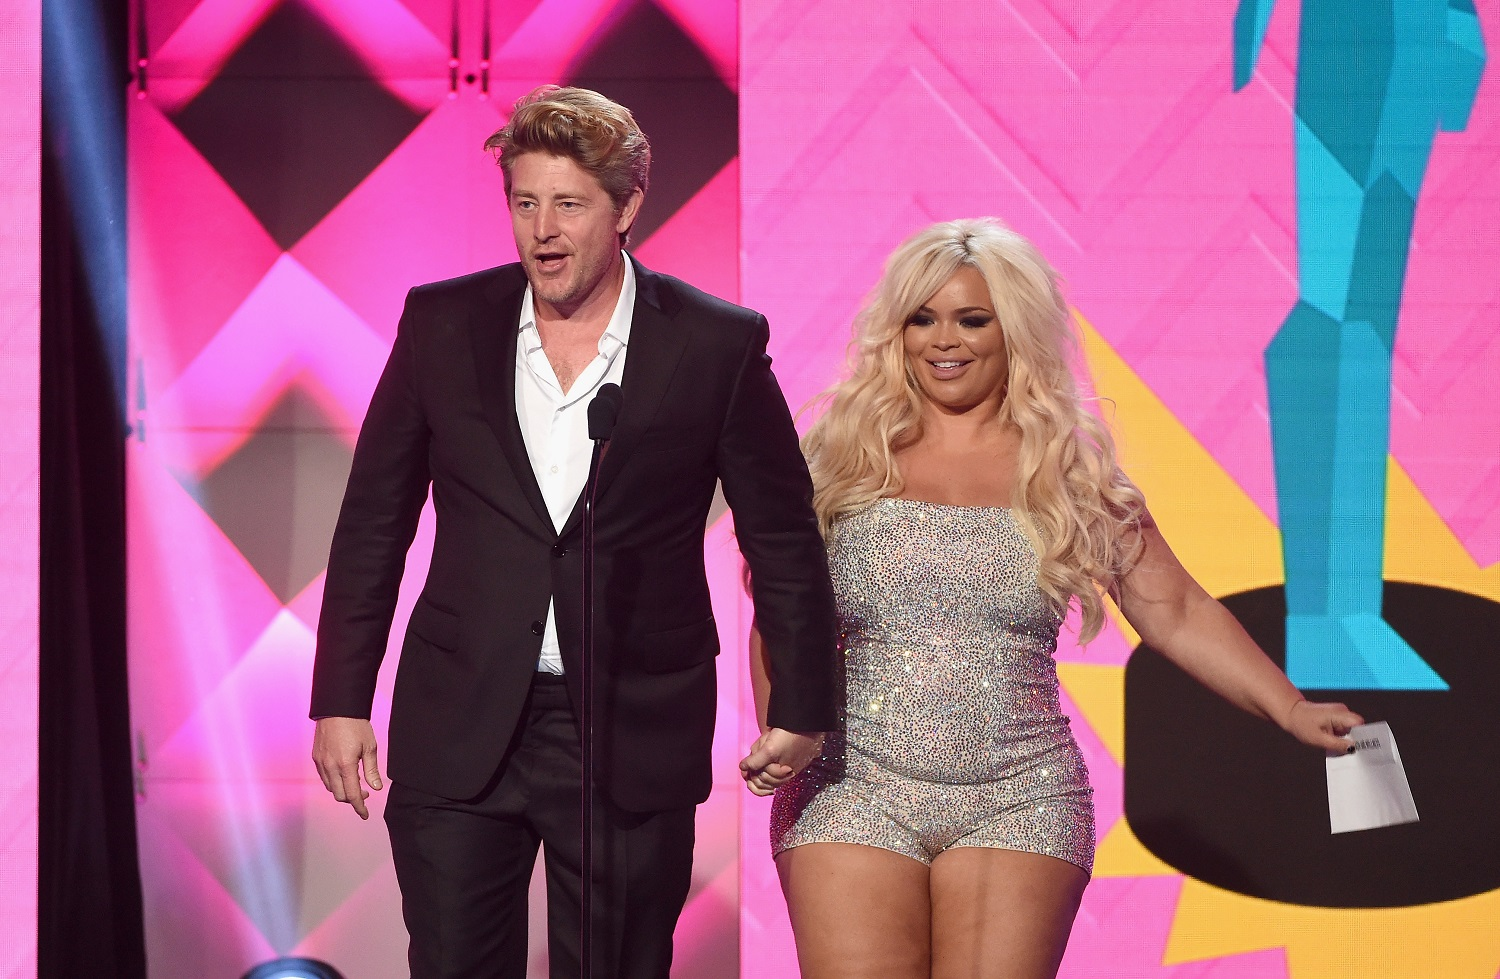 Jason Nash and Trisha Paytas speak onstage during The 8th Annual Streamy Awards at The Beverly Hilton Hotel on October 22, 2018